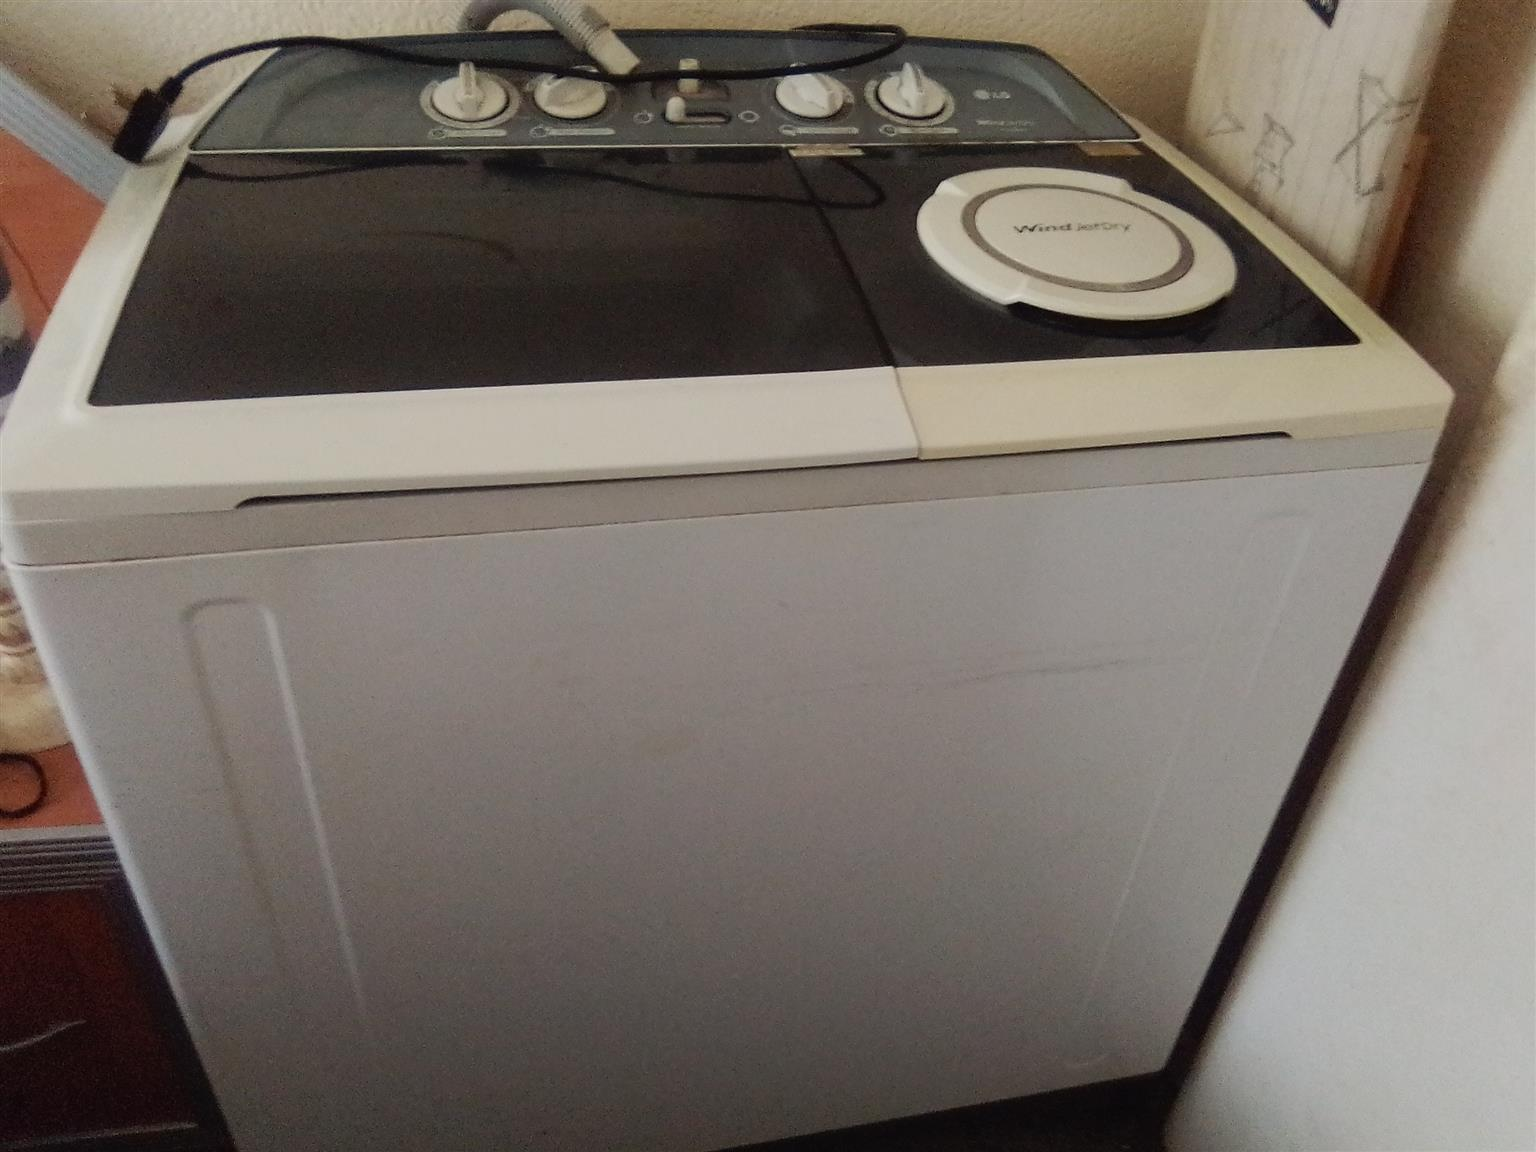 LG Twin Tub 13 kg in perfect working order, still in perfect condition